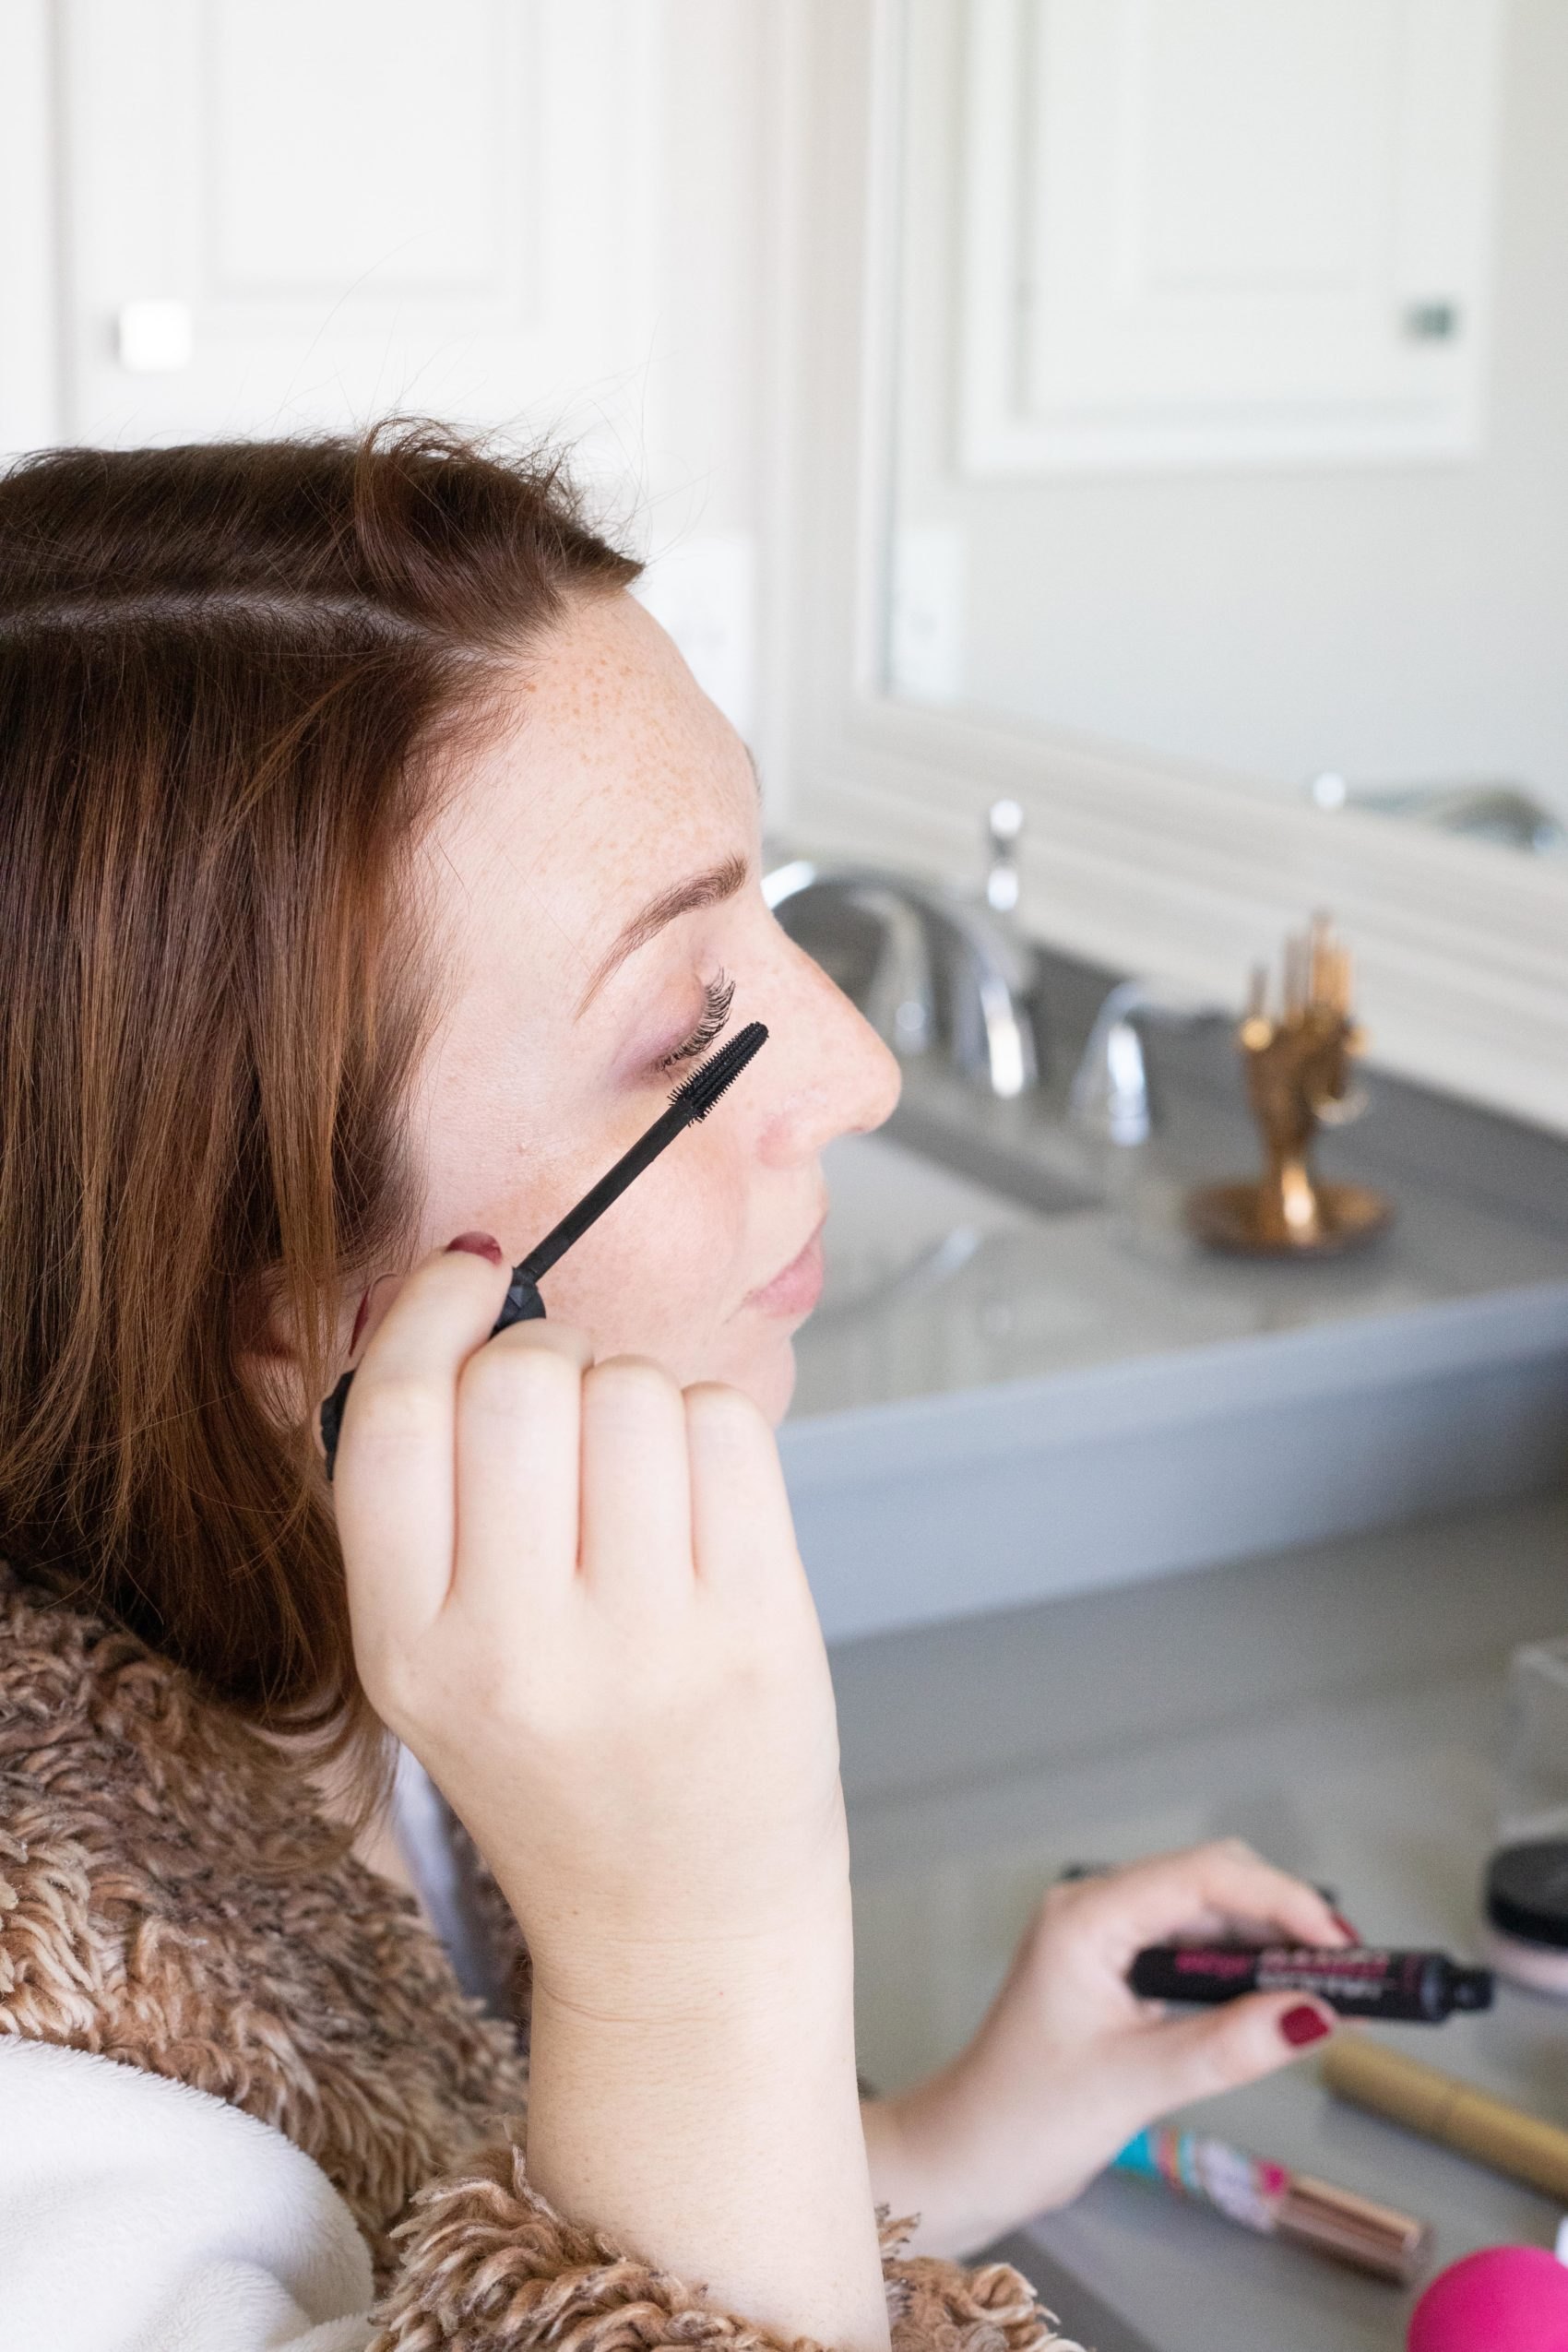 How to Put On Mascara | Natural-Looking Makeup Tutorial #makeuptutorial #eyelashes #mascara